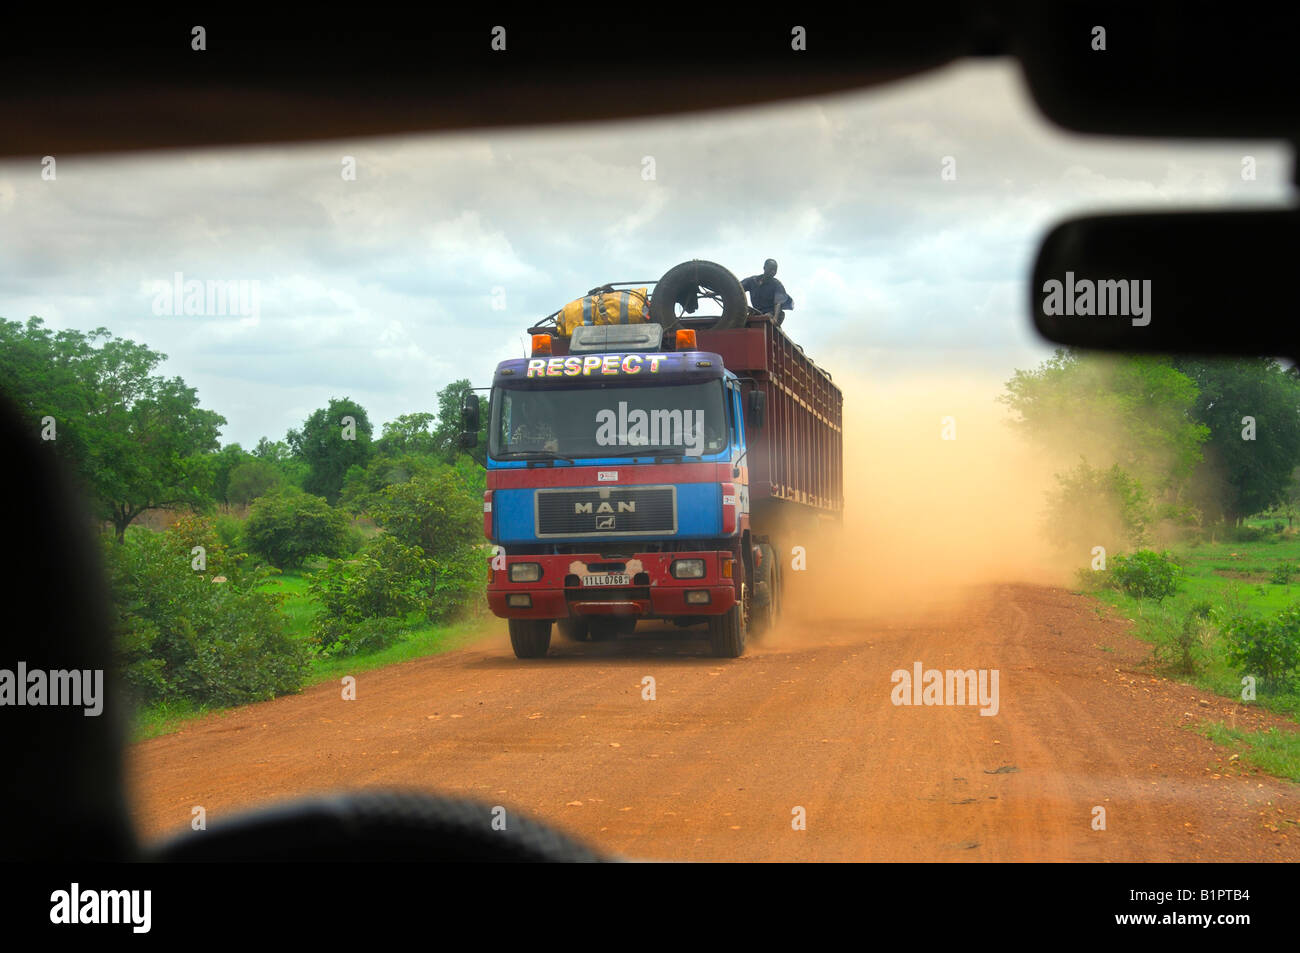 Heavy truck generates a large dust cloud on an unsurfaced country road, Burkina Faso - Stock Image